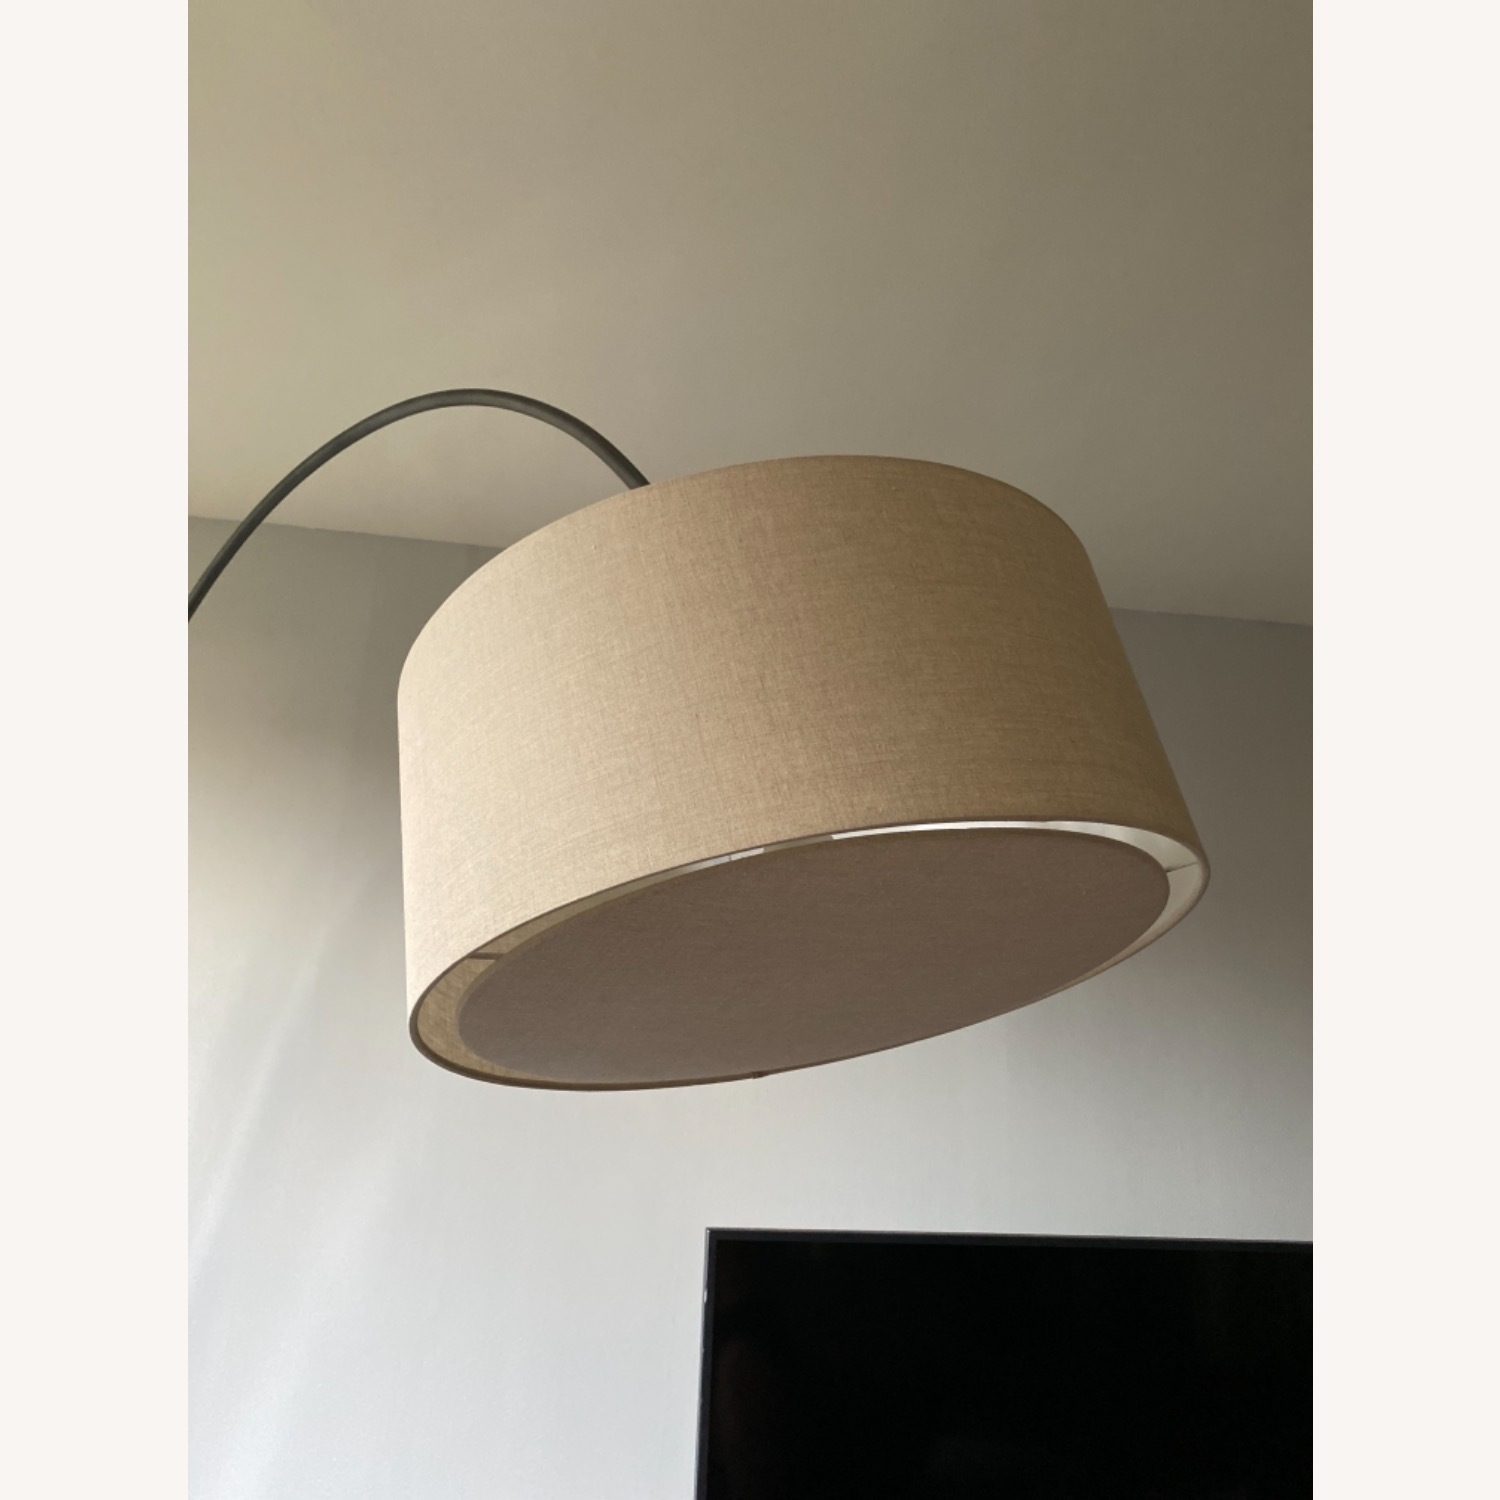 CB2 Arched Floor Lamp Beige Shade Concrete Base - image-3